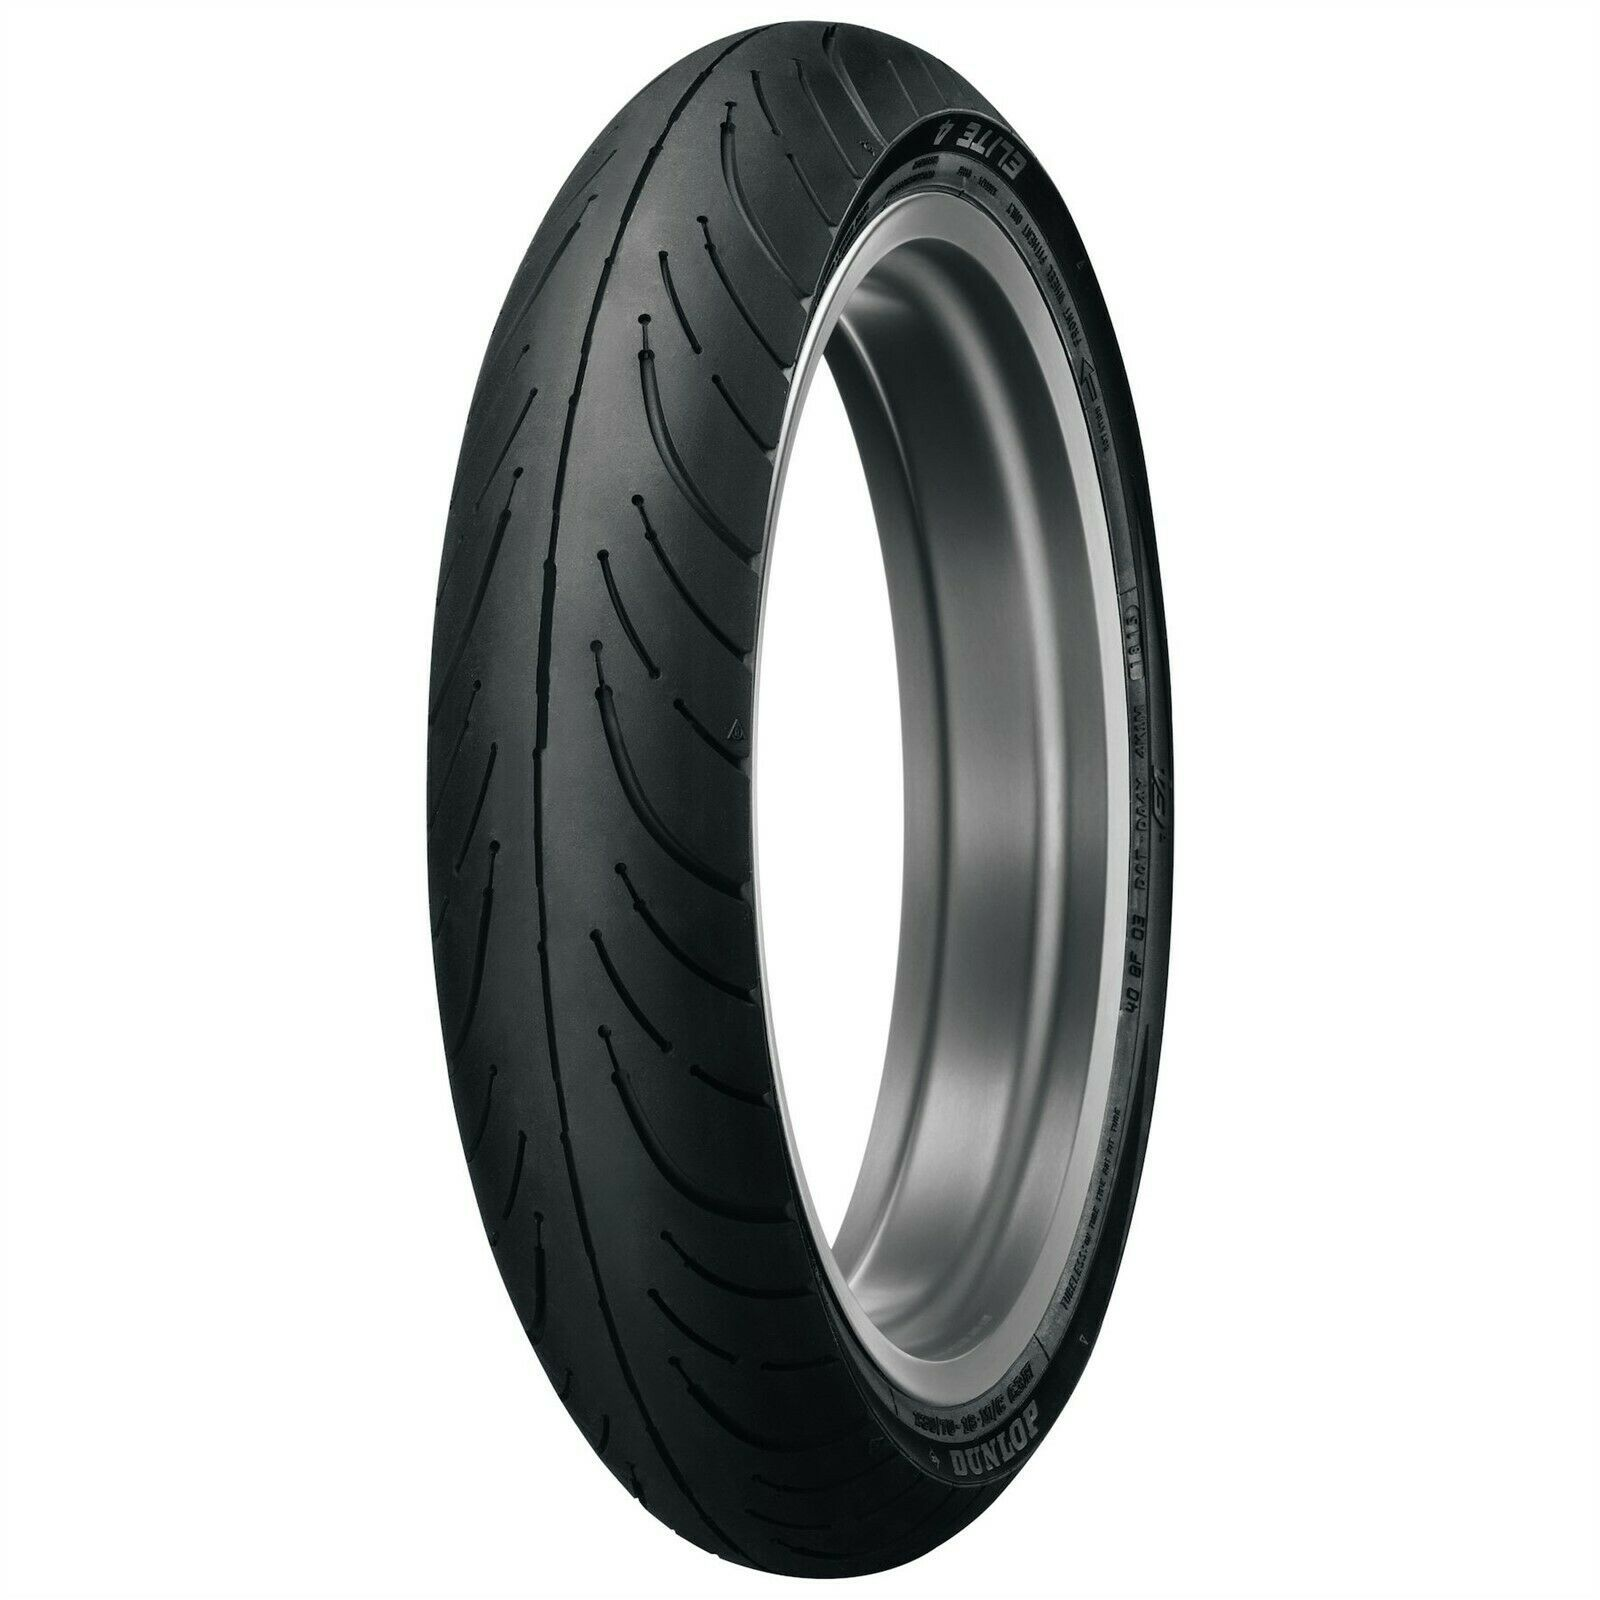 New Dunlop Elite 4 110/90-19 Bias Front Motorcycle Tire 62H High Mileage